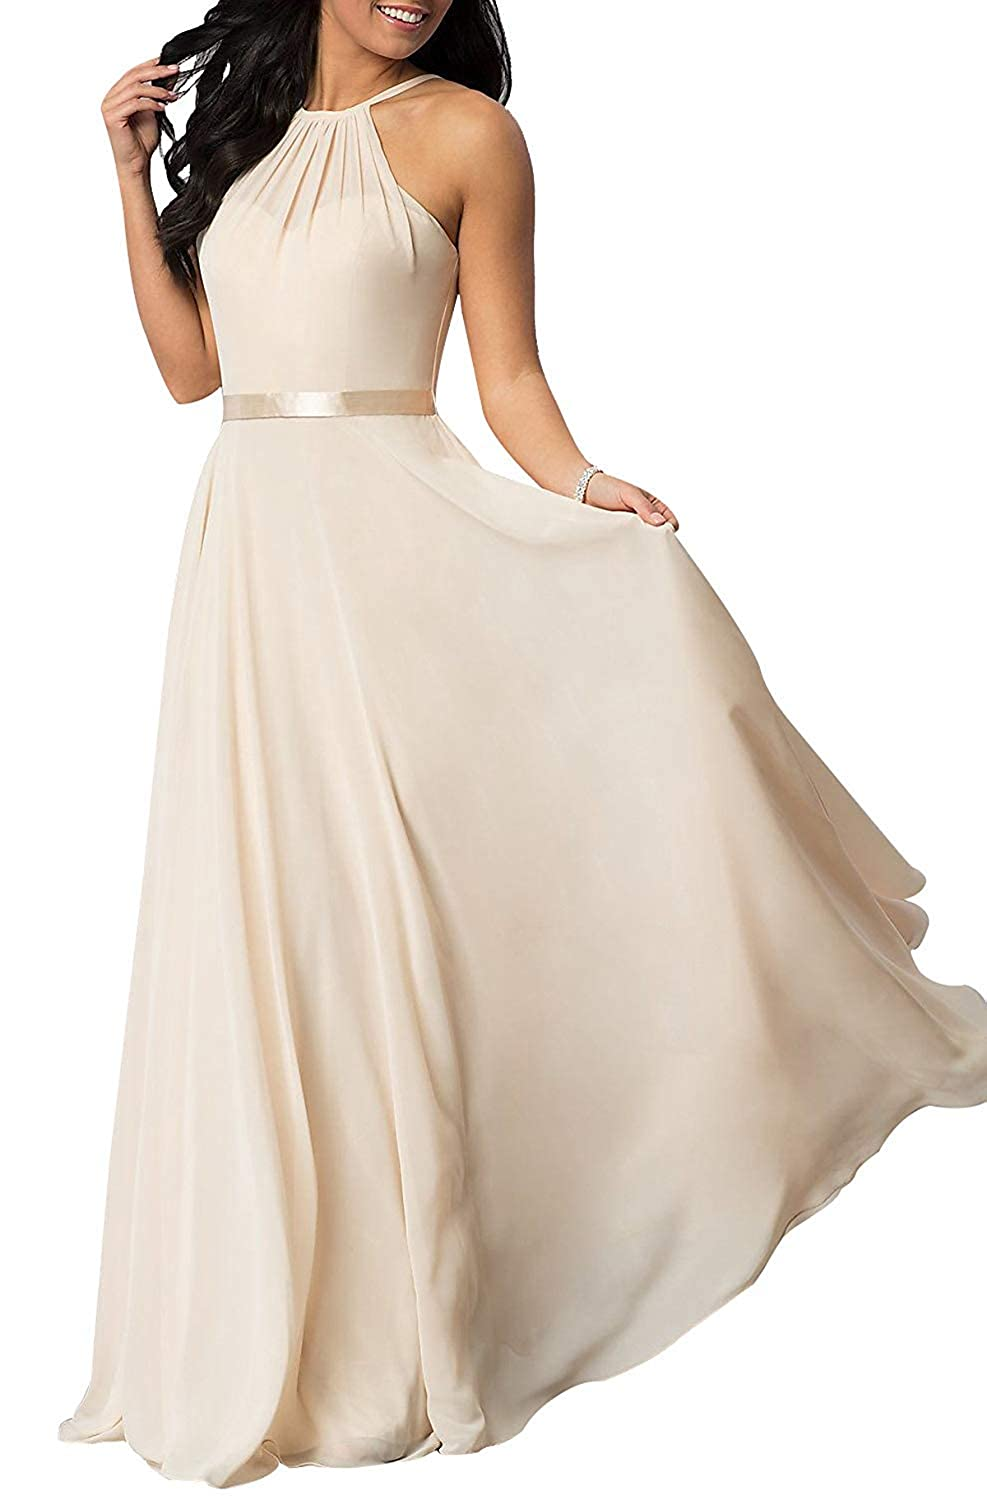 Champagne YUSHENGSM Long HighNeck Spaghetti Strap Prom Dresses Party Bridesmaid Dress Maxi Gowns